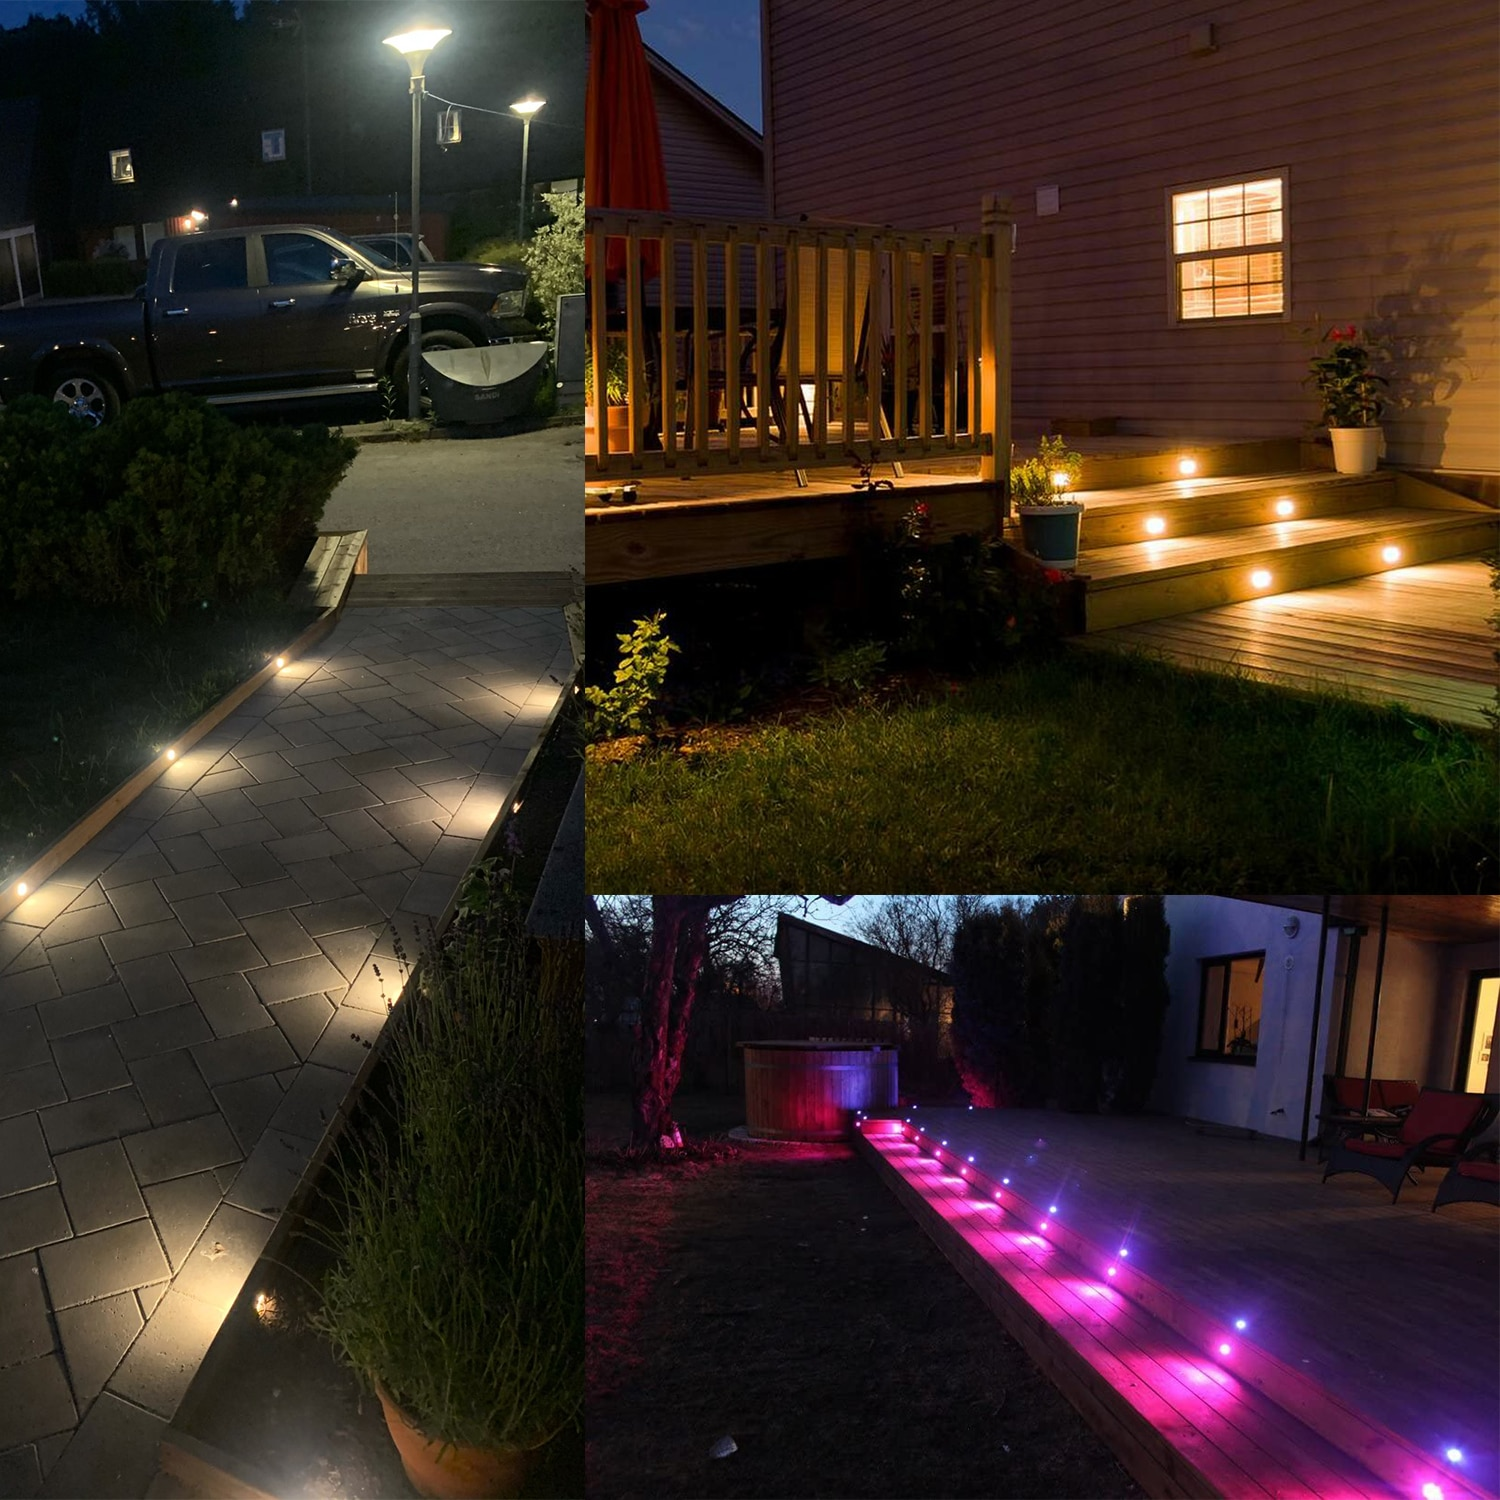 QACA Low voltage 0.6W LED Deck Light Outdoor Garden Patio Stairs Landscape Decor LED Lighting In-ground 20pcs/set B110-20 enlarge